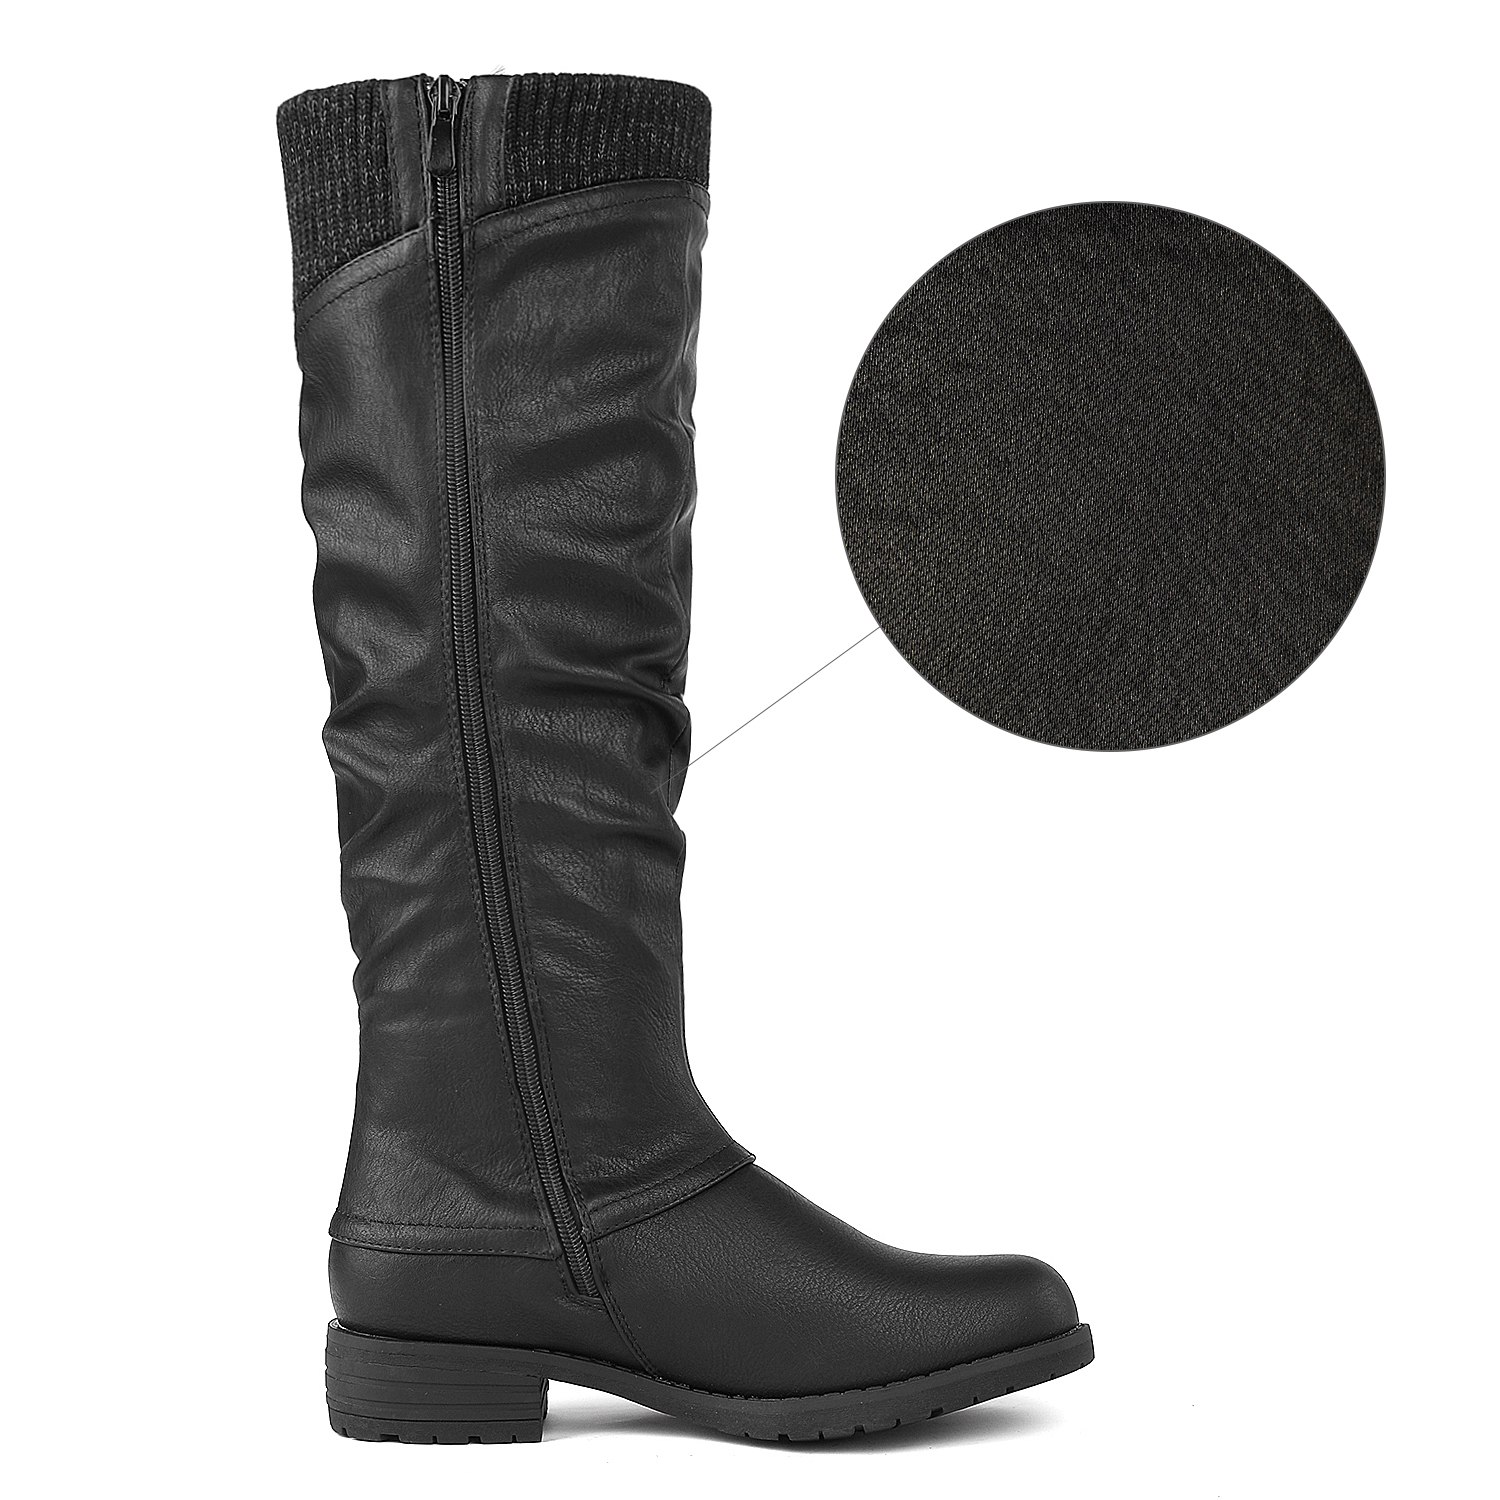 DREAM-PAIRS-Womens-DEPP-Cowgirl-Soft-PU-Leather-Combat-Knee-High-Riding-Boots thumbnail 7